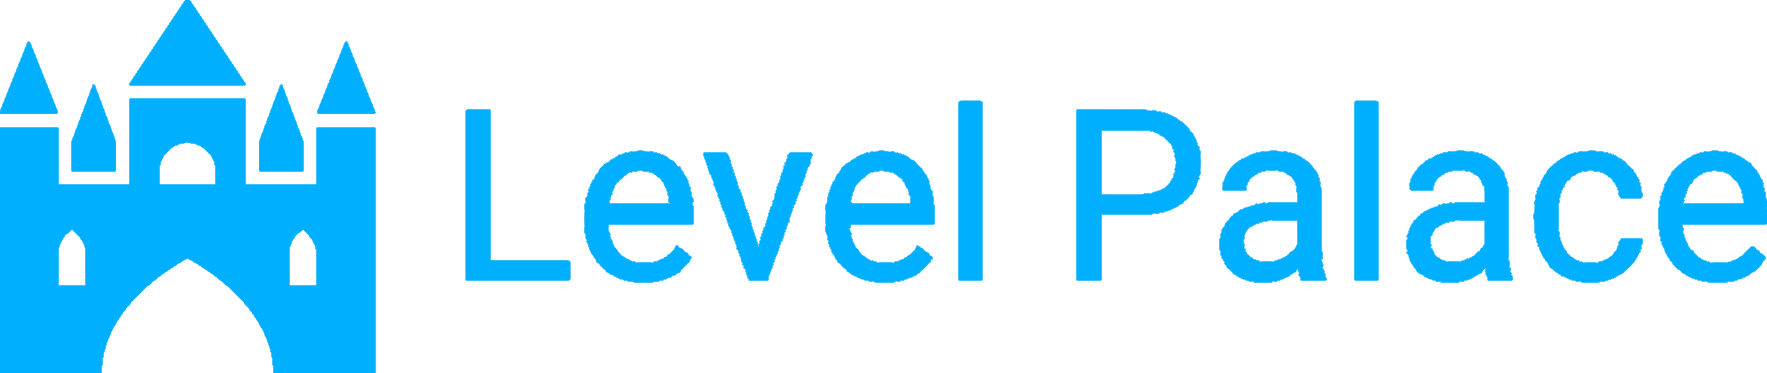 level palace logo